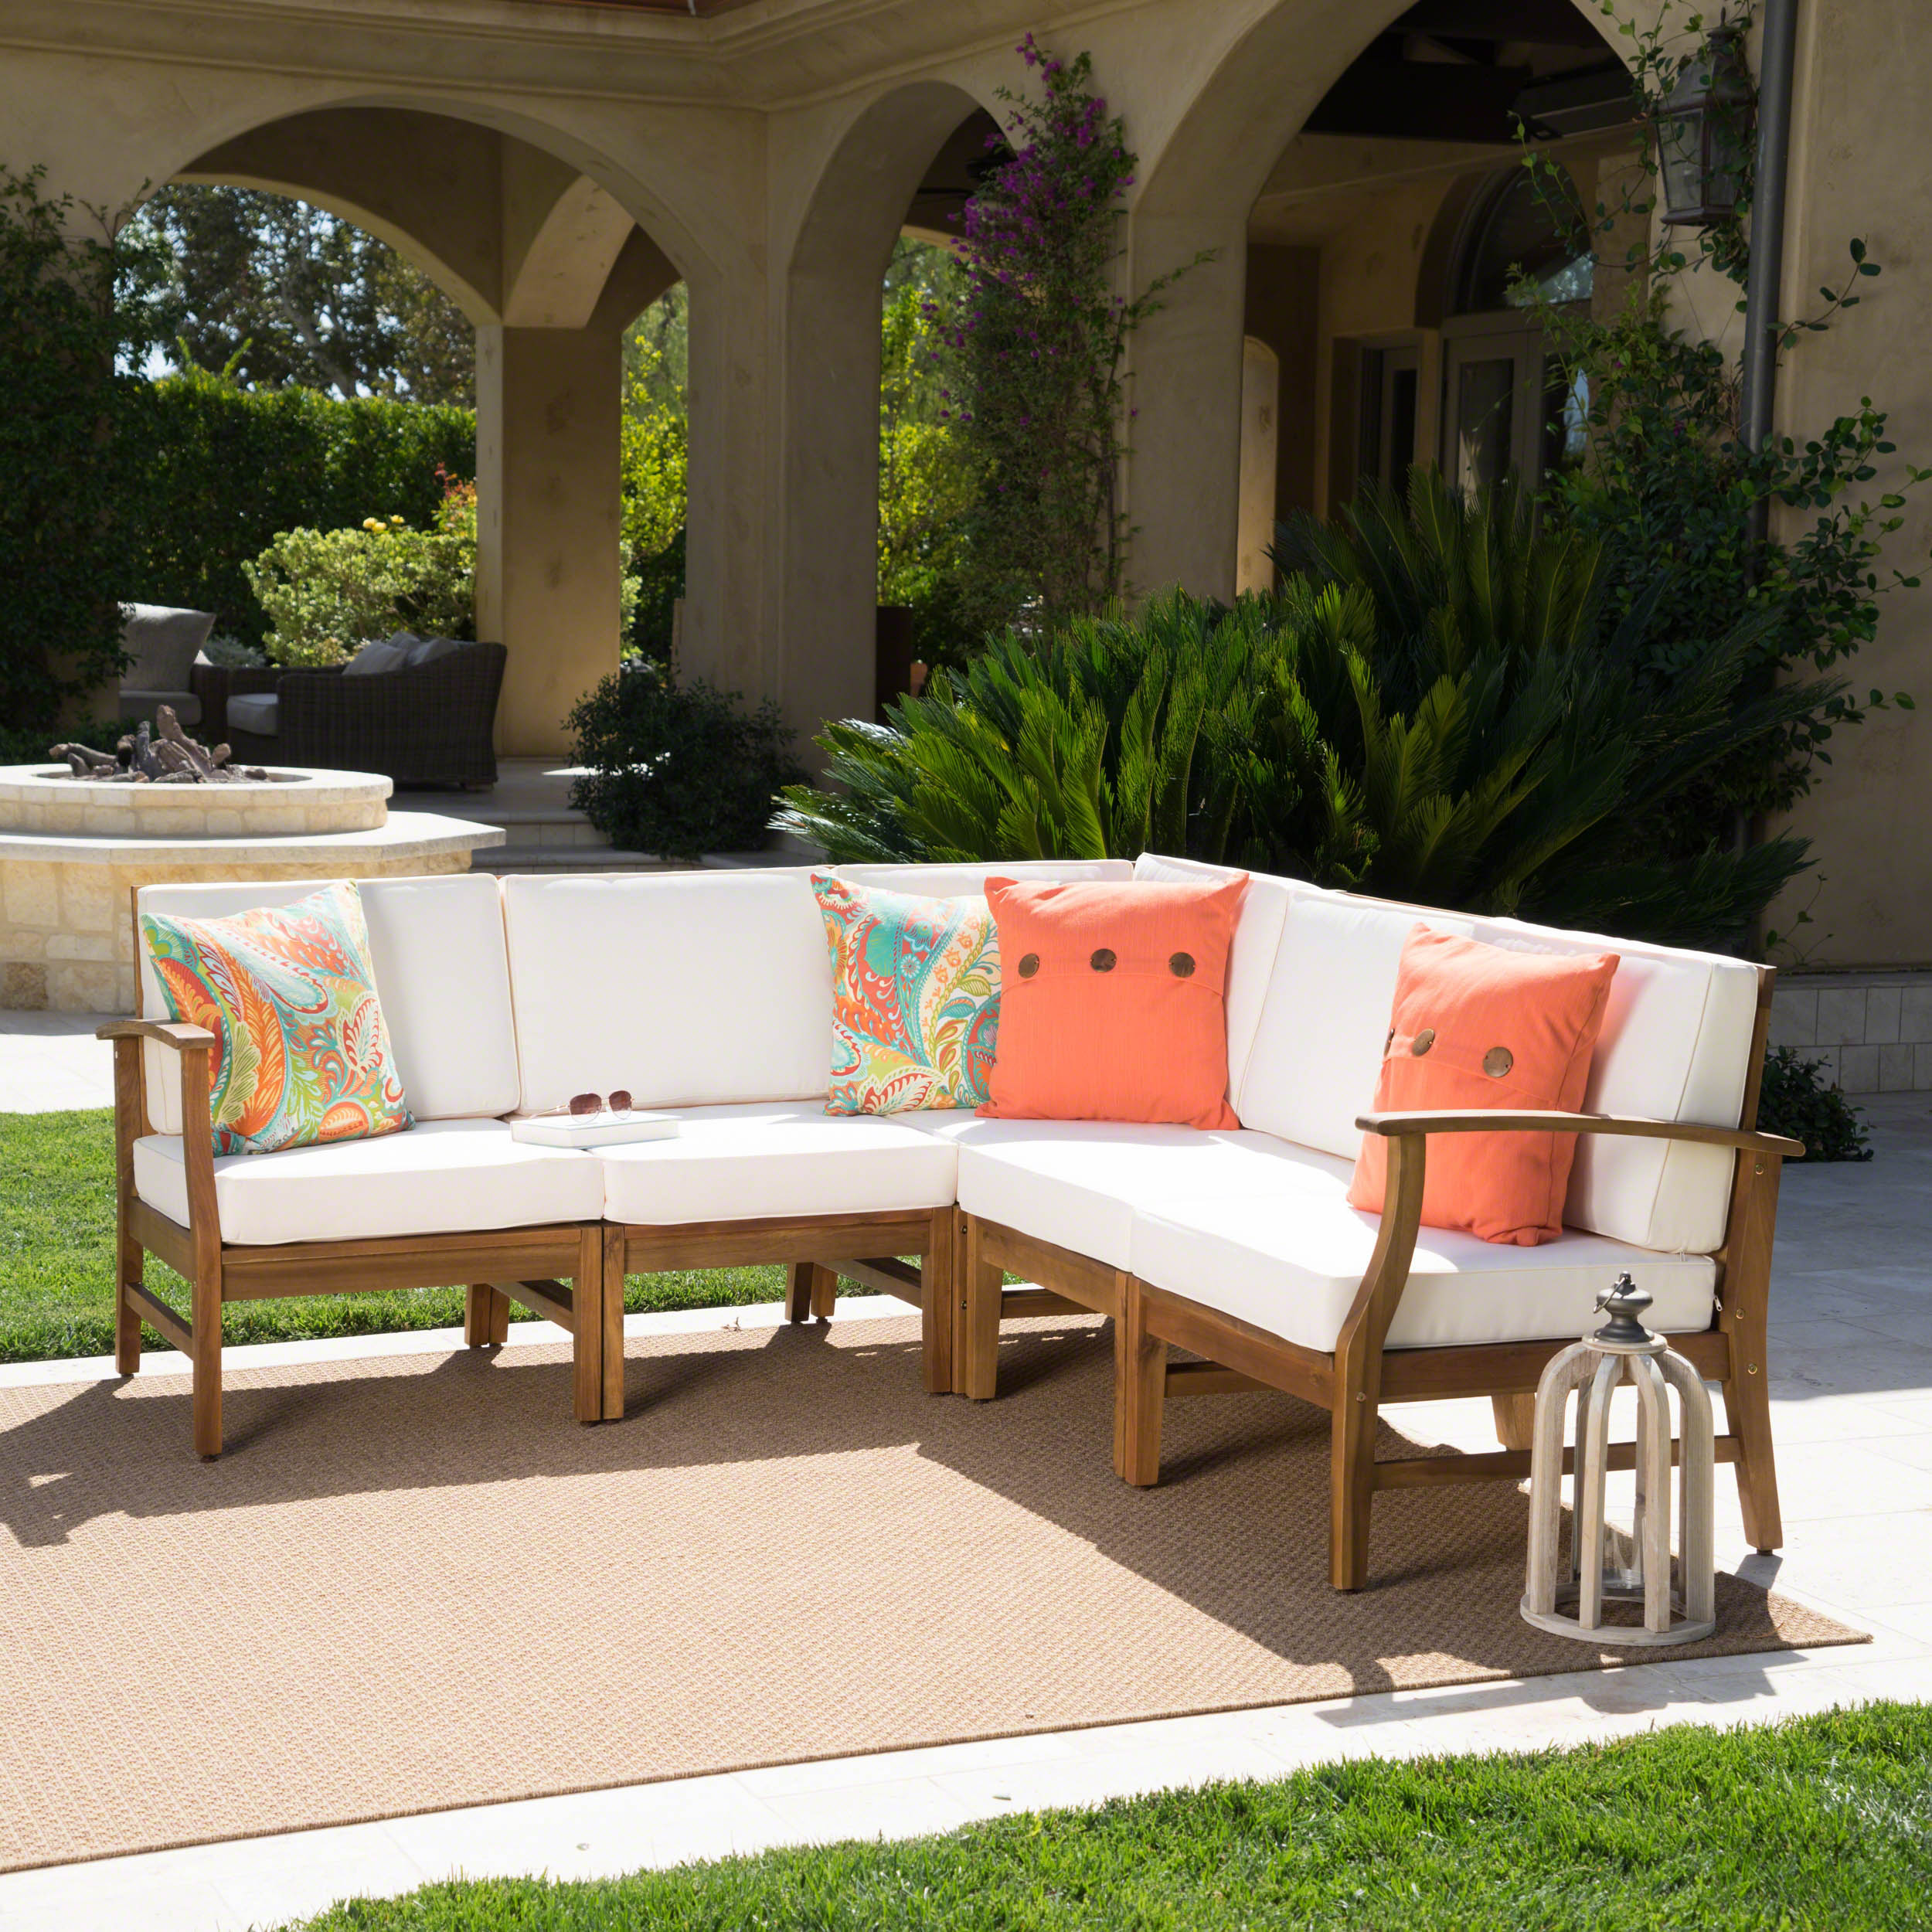 Hermosa Outdoor 5 Piece Chat Set with Cushions (No Coffee Table), Teak Finish, Cream